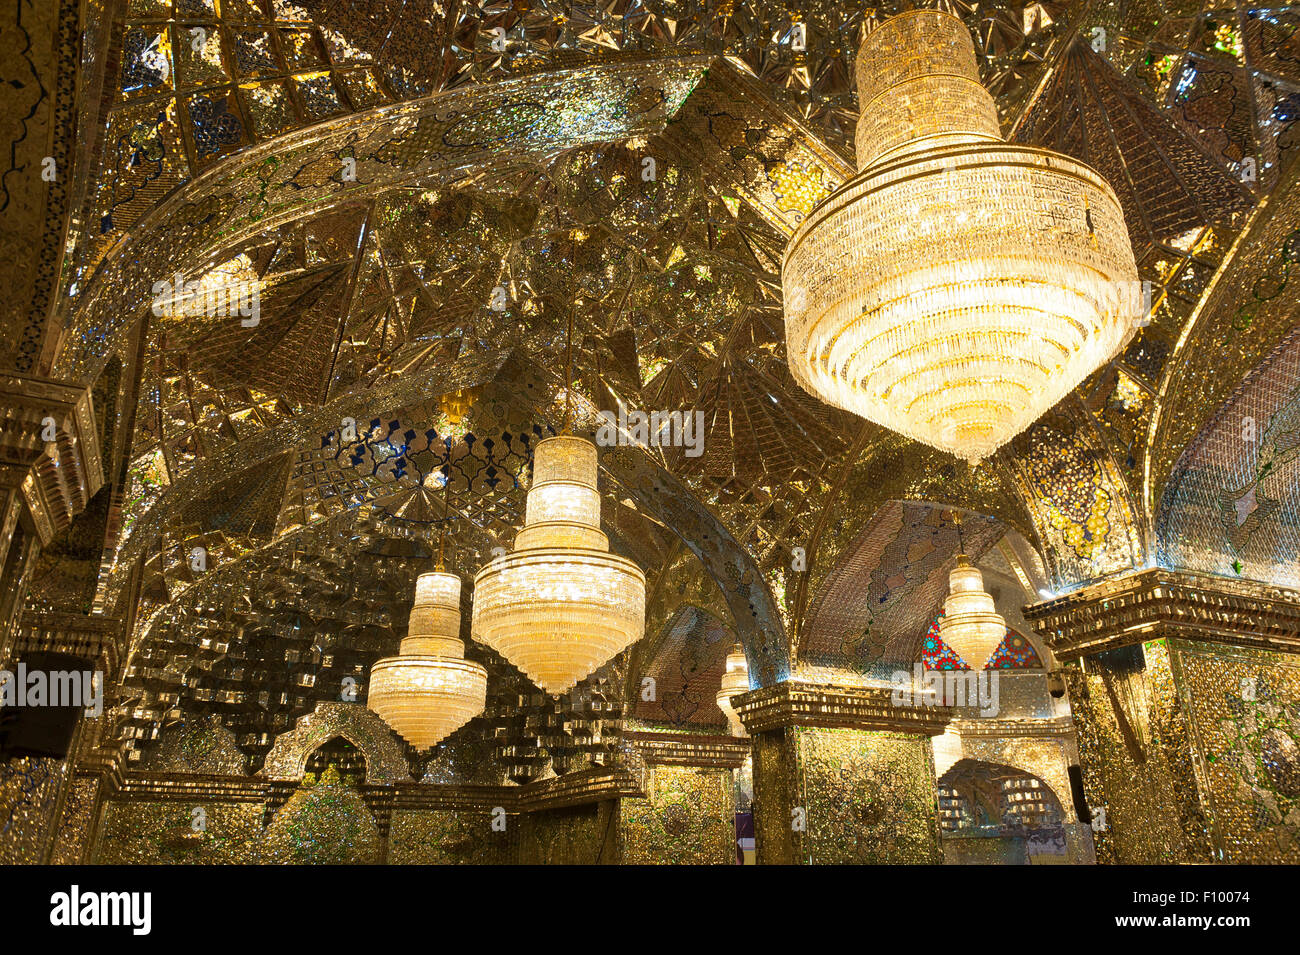 Ceiling of the prayer hall with chandeliers, Shah Cheragh mausoleum and mosque, Cheragh, Shiraz, Iran - Stock Image